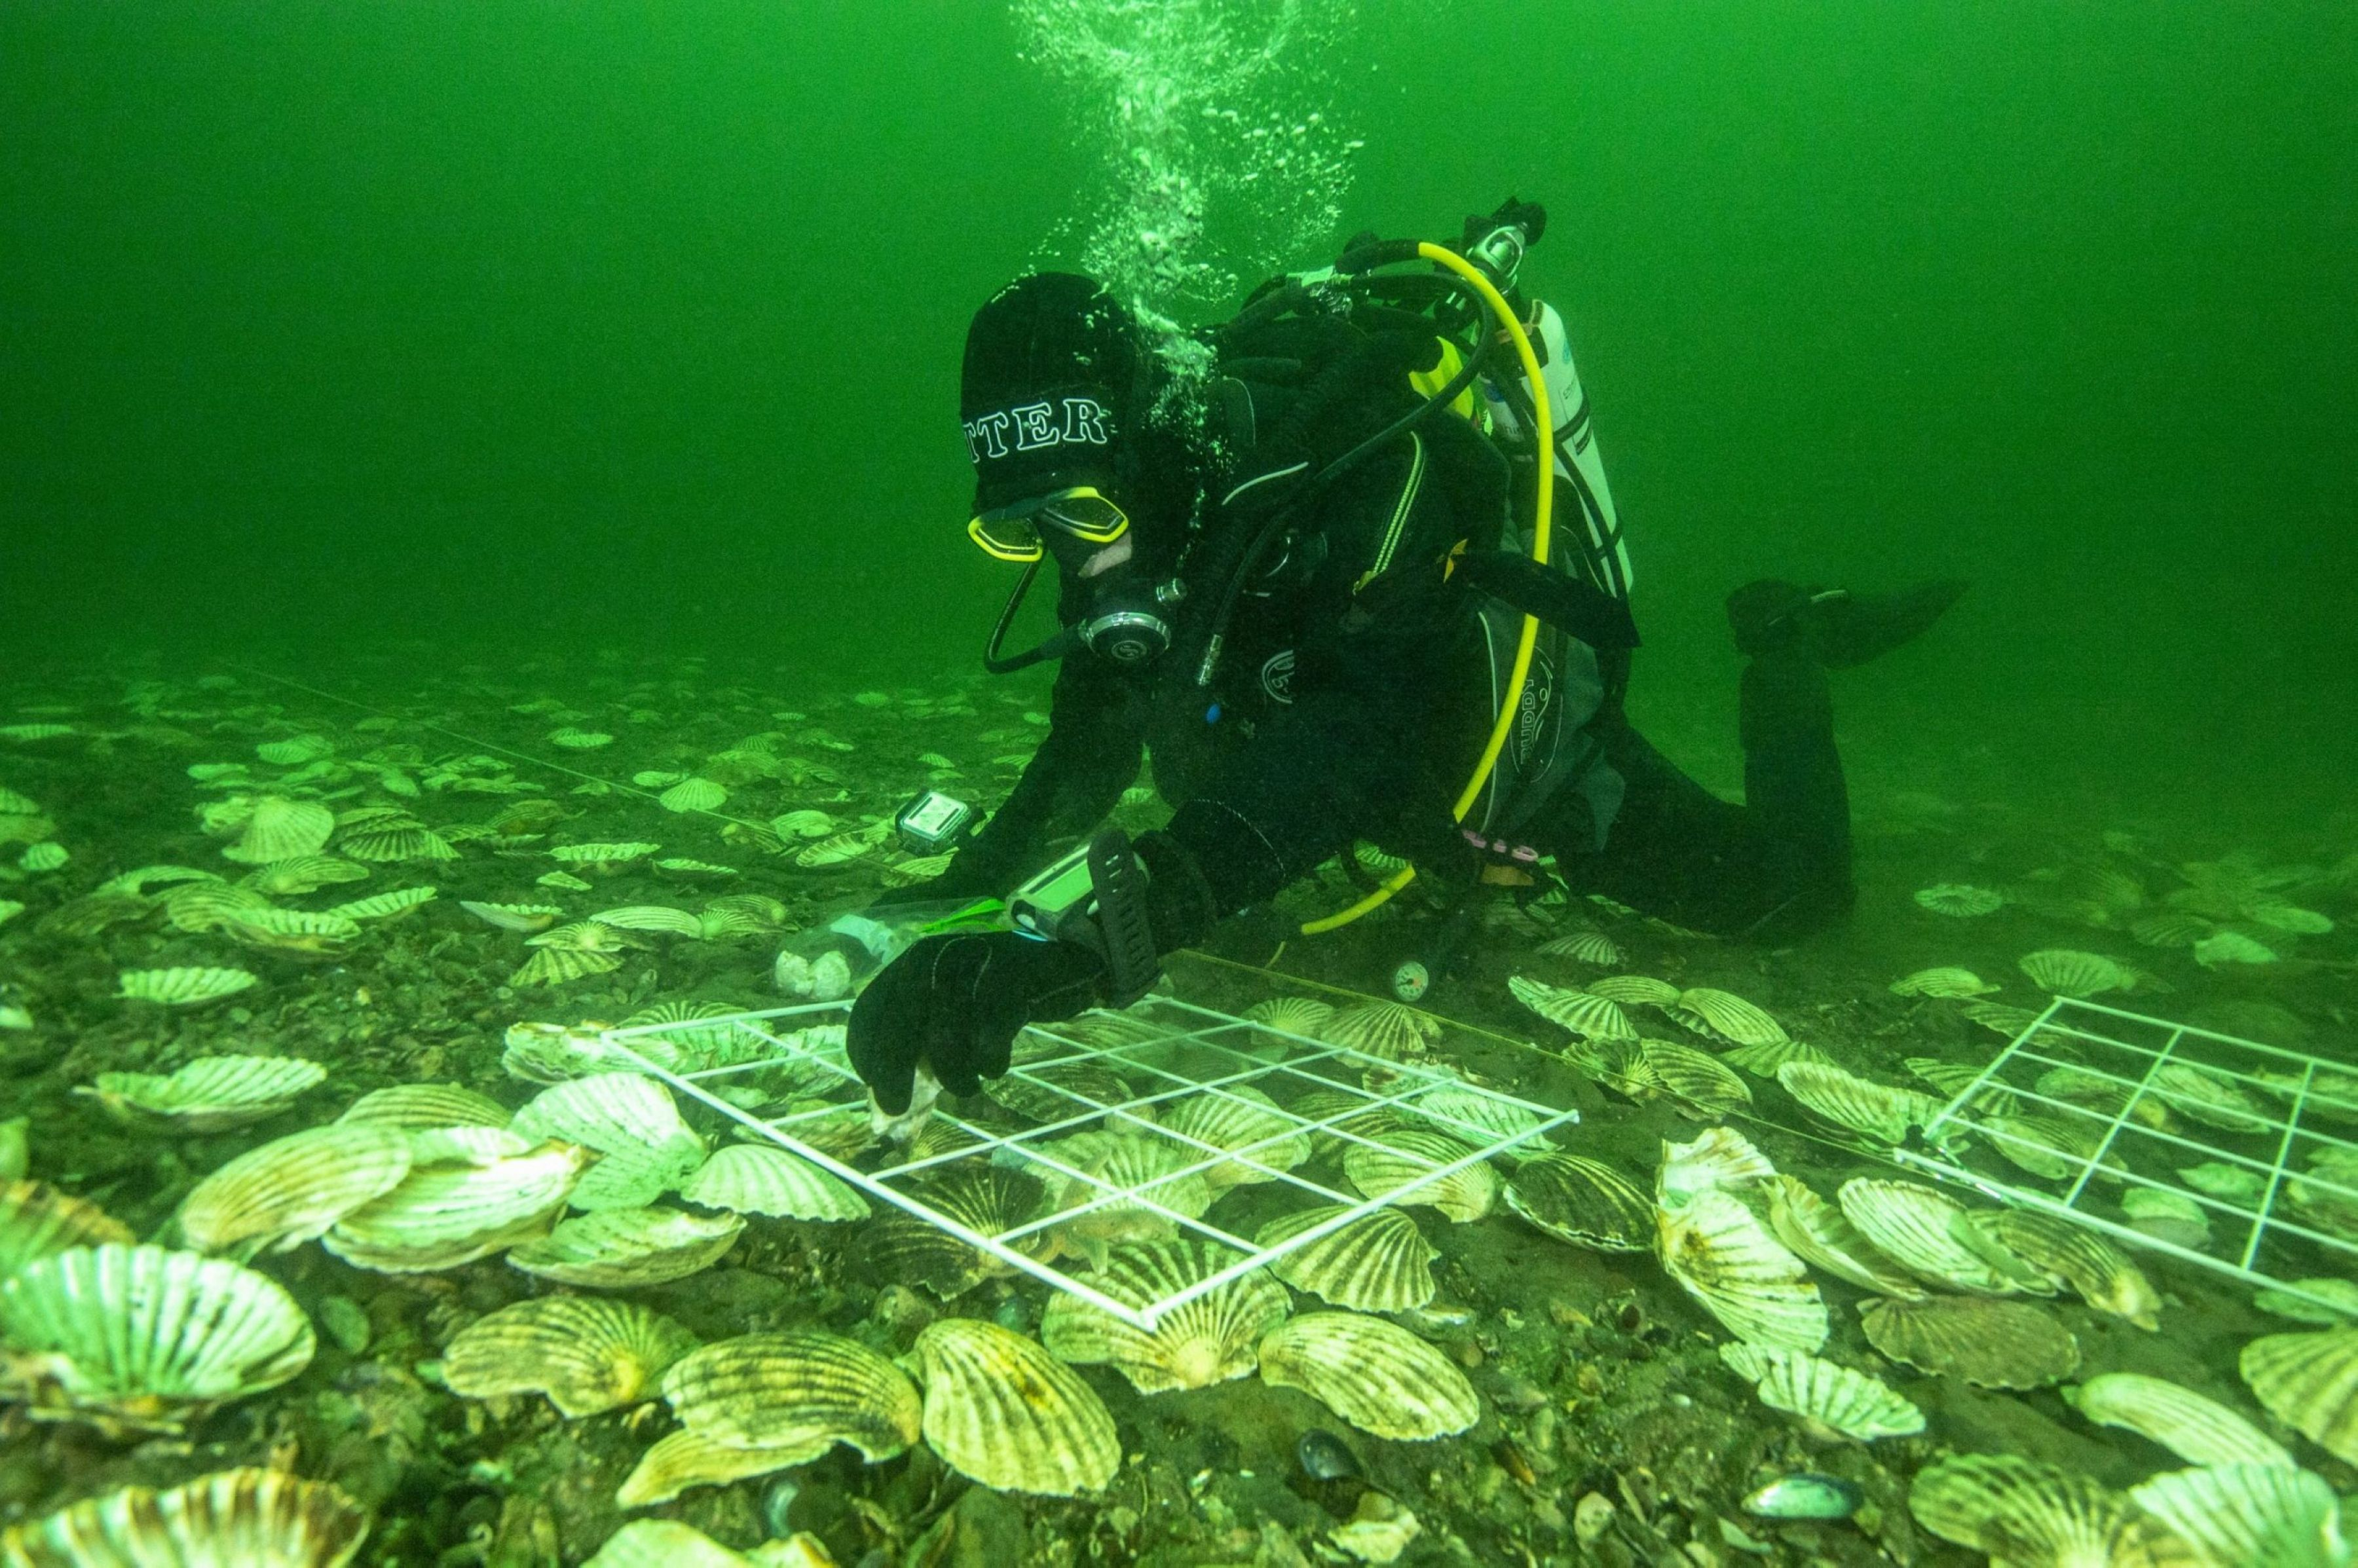 Glenmorangie's DEEP project lead scientist Dr Bill Sanderson carefully lays Native European Oysters on the bottom of the Dornoch Firth